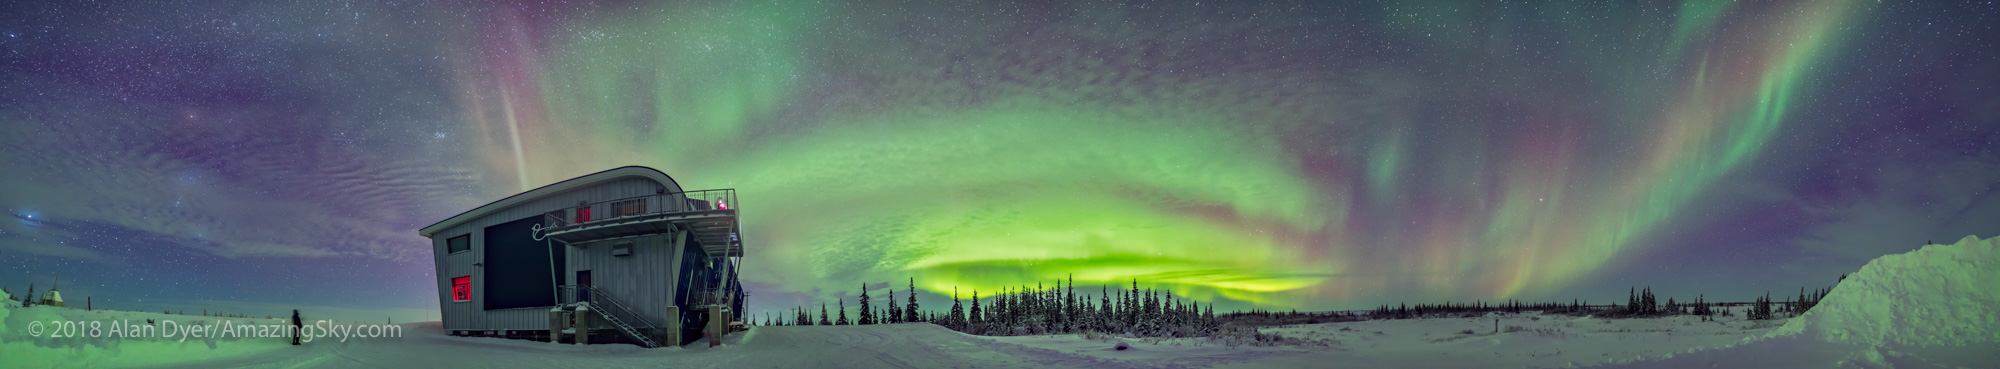 A 270° panorama from southwest to northeast taking in the full sweep of the auroral arcs this night, January 29, 2017 at the Churchill Northern Studies Centre, on the shore of Hudson Bay in Churchill, Manitoba. Sirius and Orion are at far left. The Pleiades is over CNSC. Arcturus is at far right. A lone aurora observer stands at left. Someone is also on the second floor deck. A bit of an isolated arc is at right to the east. This is a stitch of 11 segments, each 10 seconds at f/2 with the Sigma 20mm Art lens and Nikon D750 at ISO 3200. Stitched with Adobe Camera Raw.